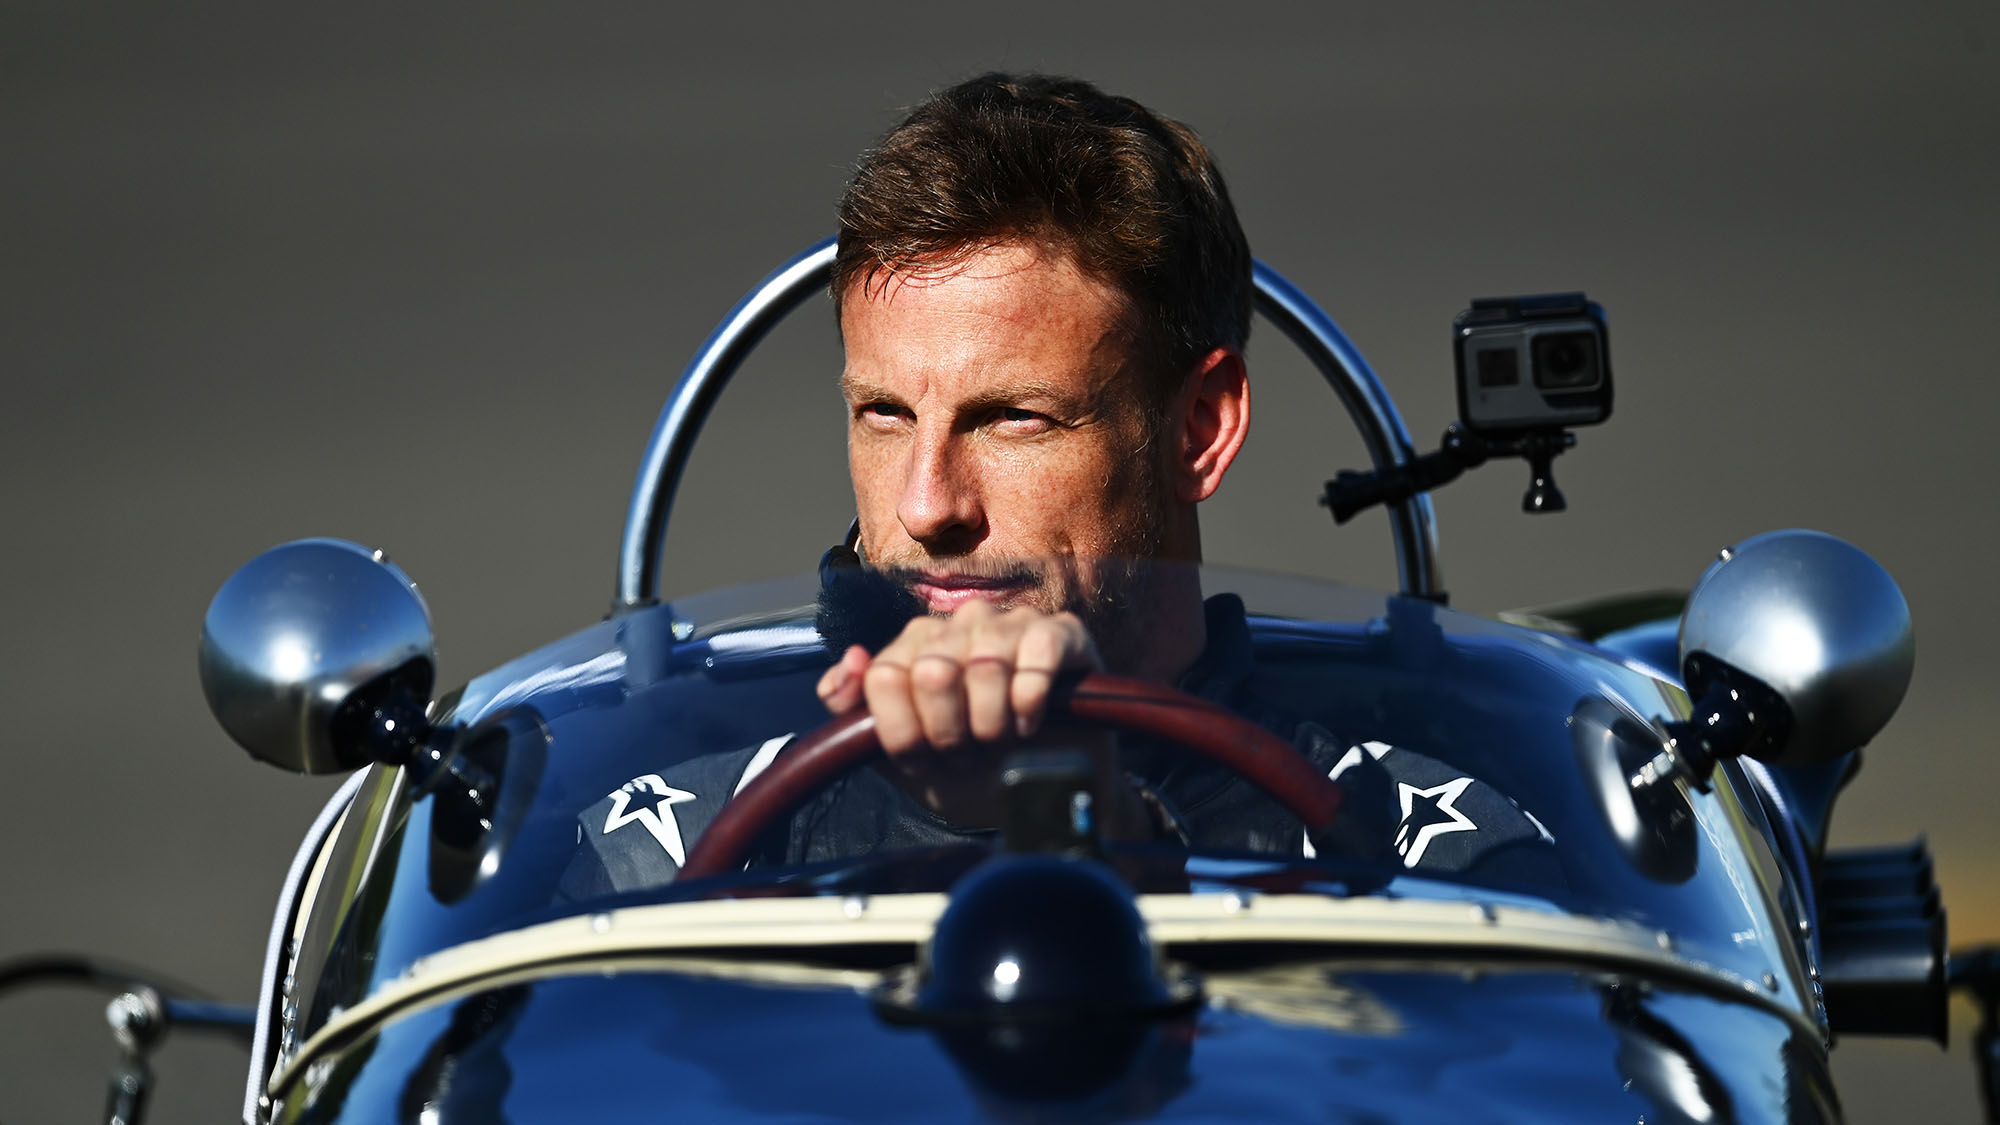 NORTHAMPTON, ENGLAND - AUGUST 07: Jenson Button drives the Lotus 18 of the late Stirling Moss as part of a tribute before practice for the F1 70th Anniversary Grand Prix at Silverstone on August 07, 2020 in Northampton, England. (Photo by Clive Mason - Formula 1/Formula 1 via Getty Images)